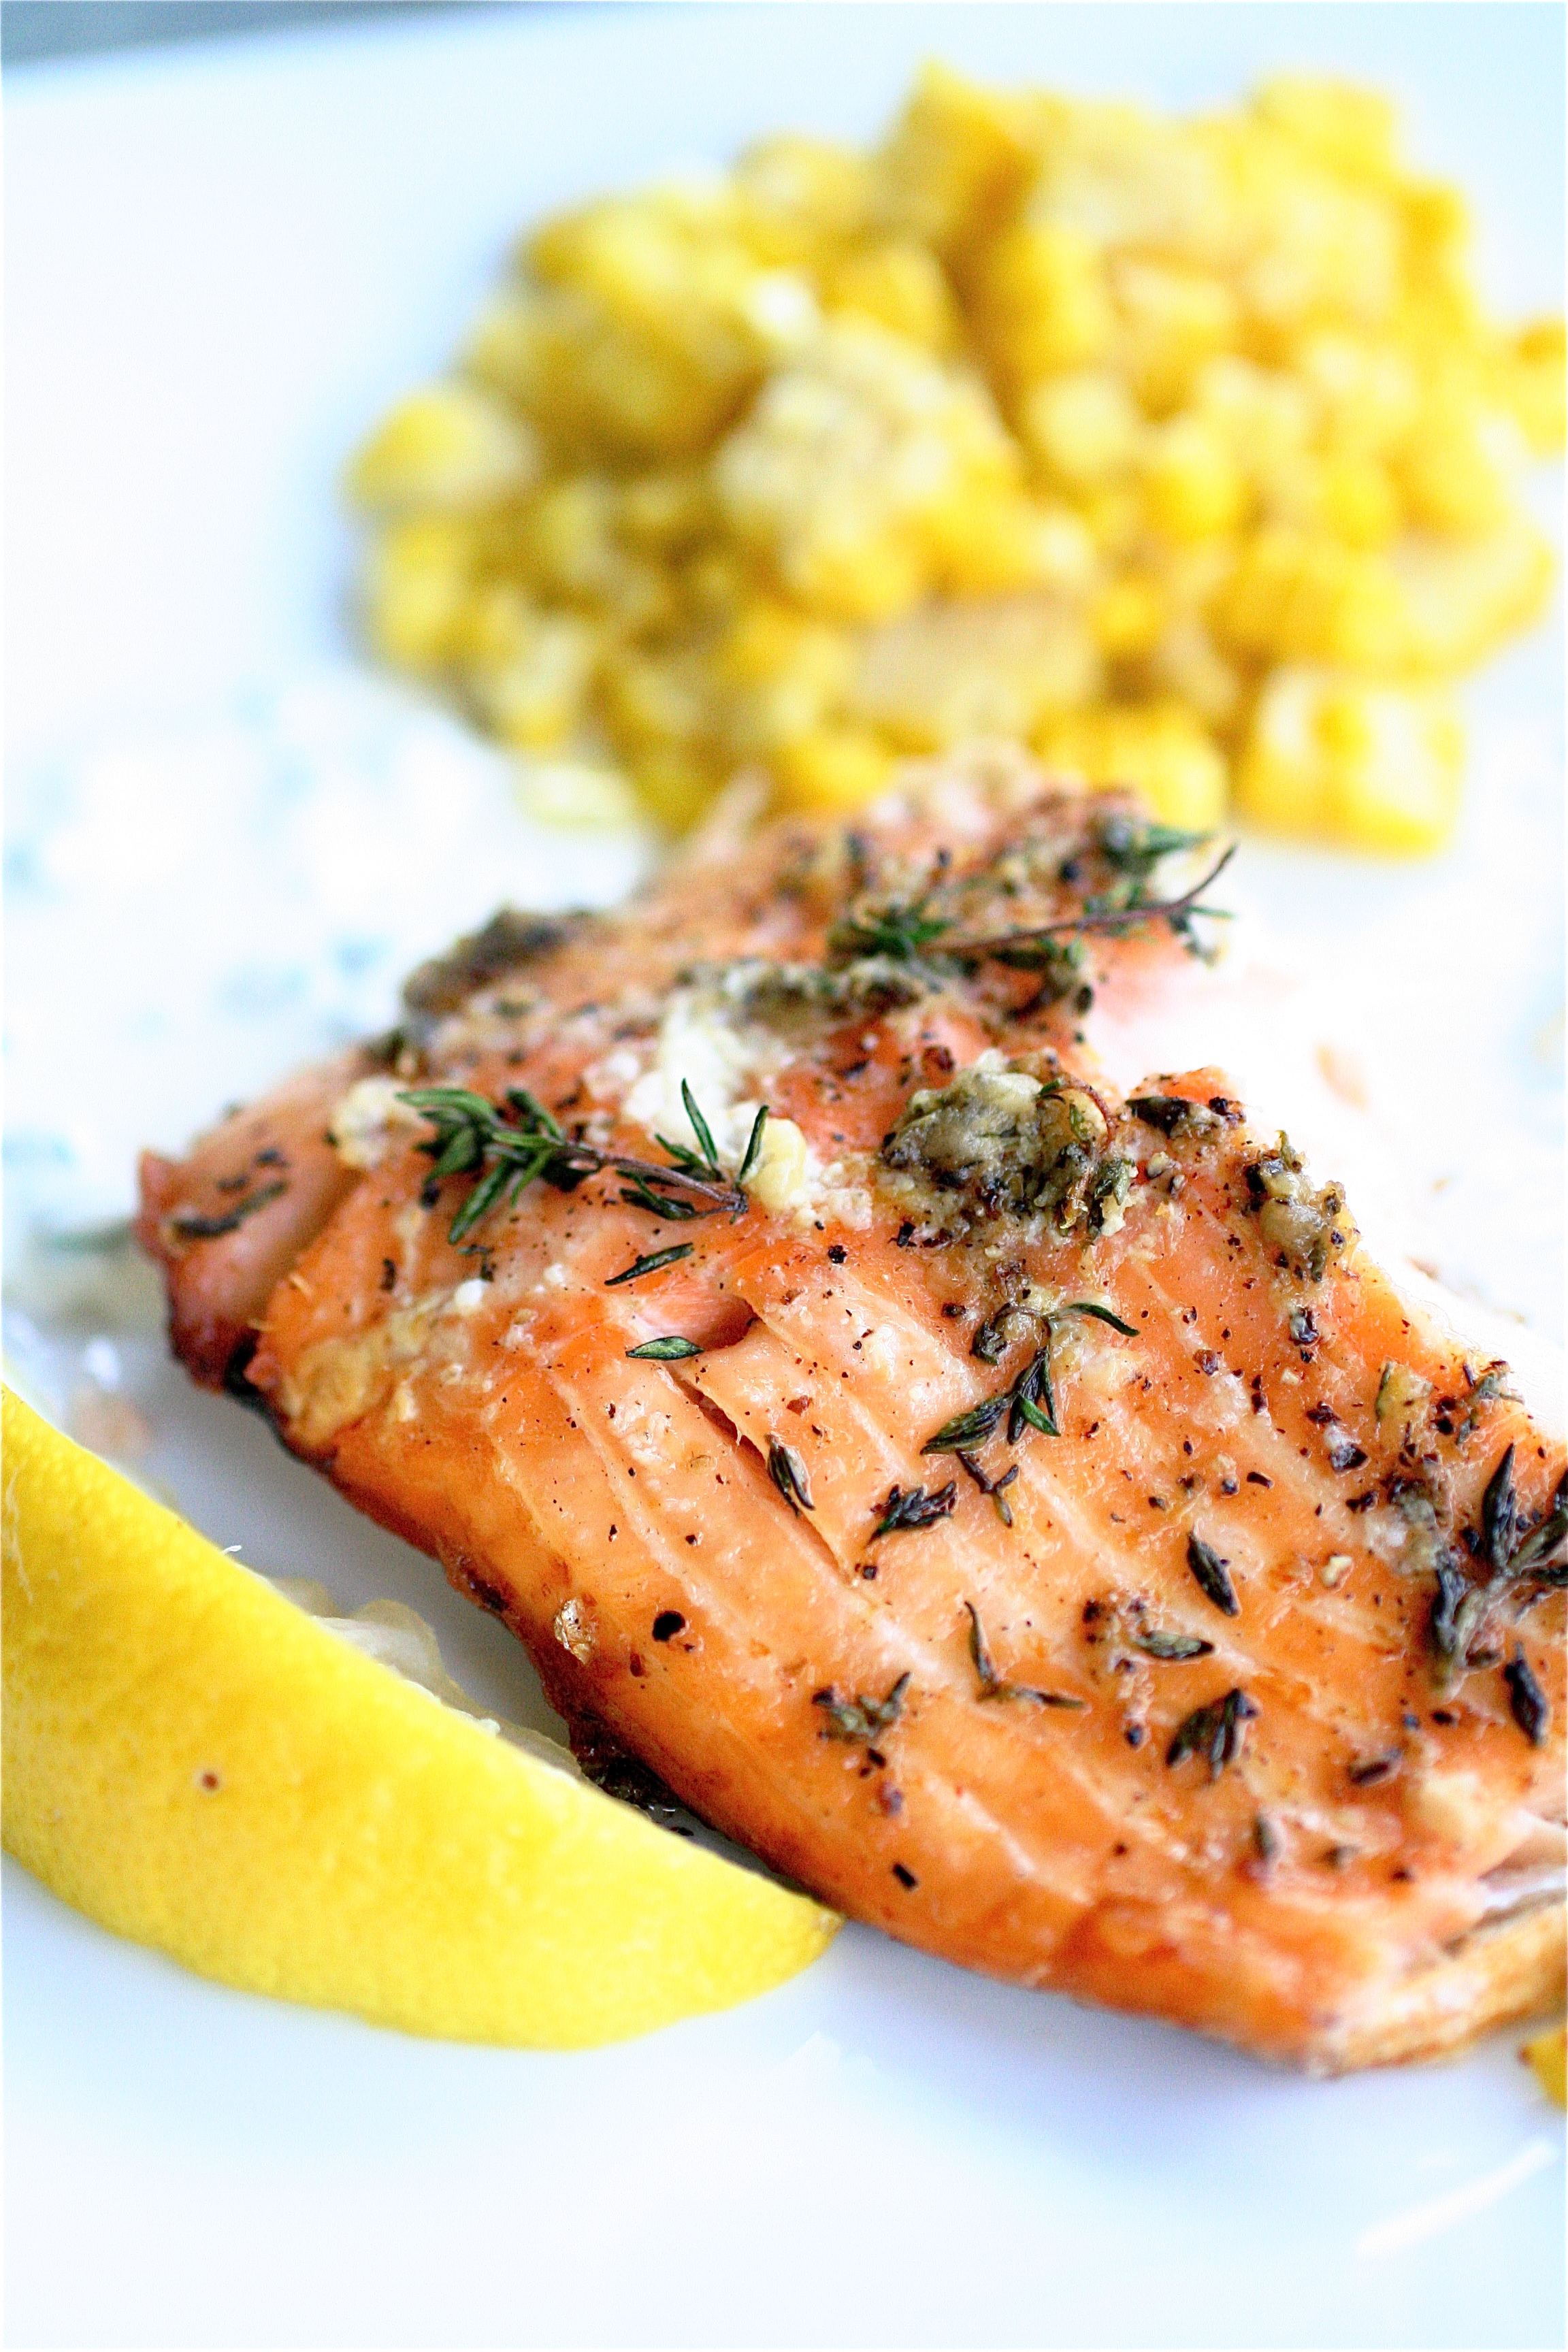 Cedar-Planked Salmon With Horseradish-Chive Sauce | The Curvy Carrot